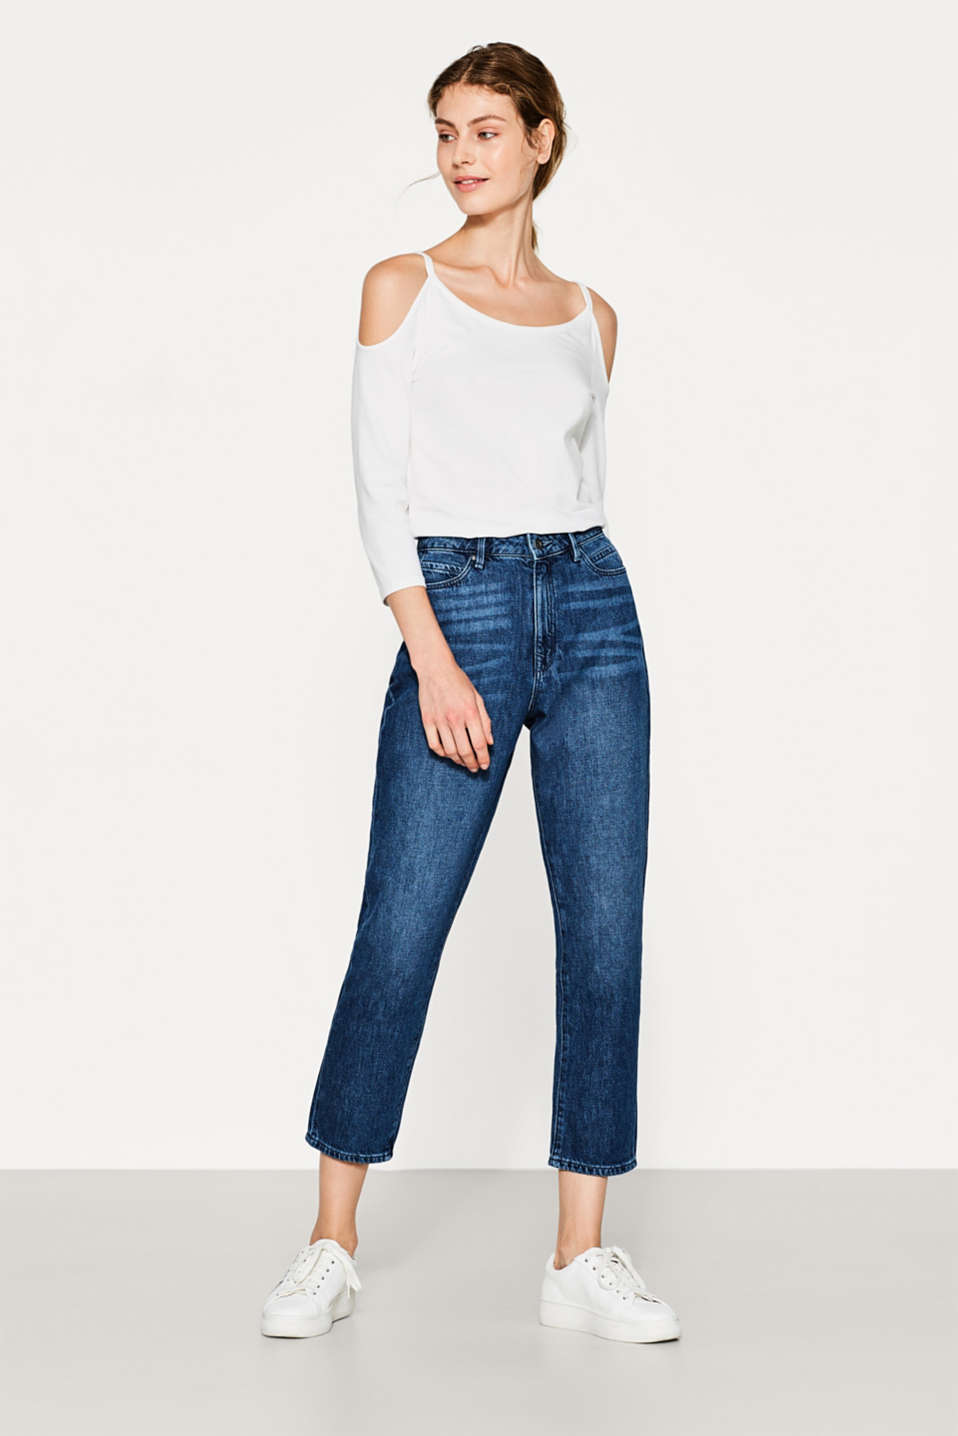 Stumpede jeans i mom-look